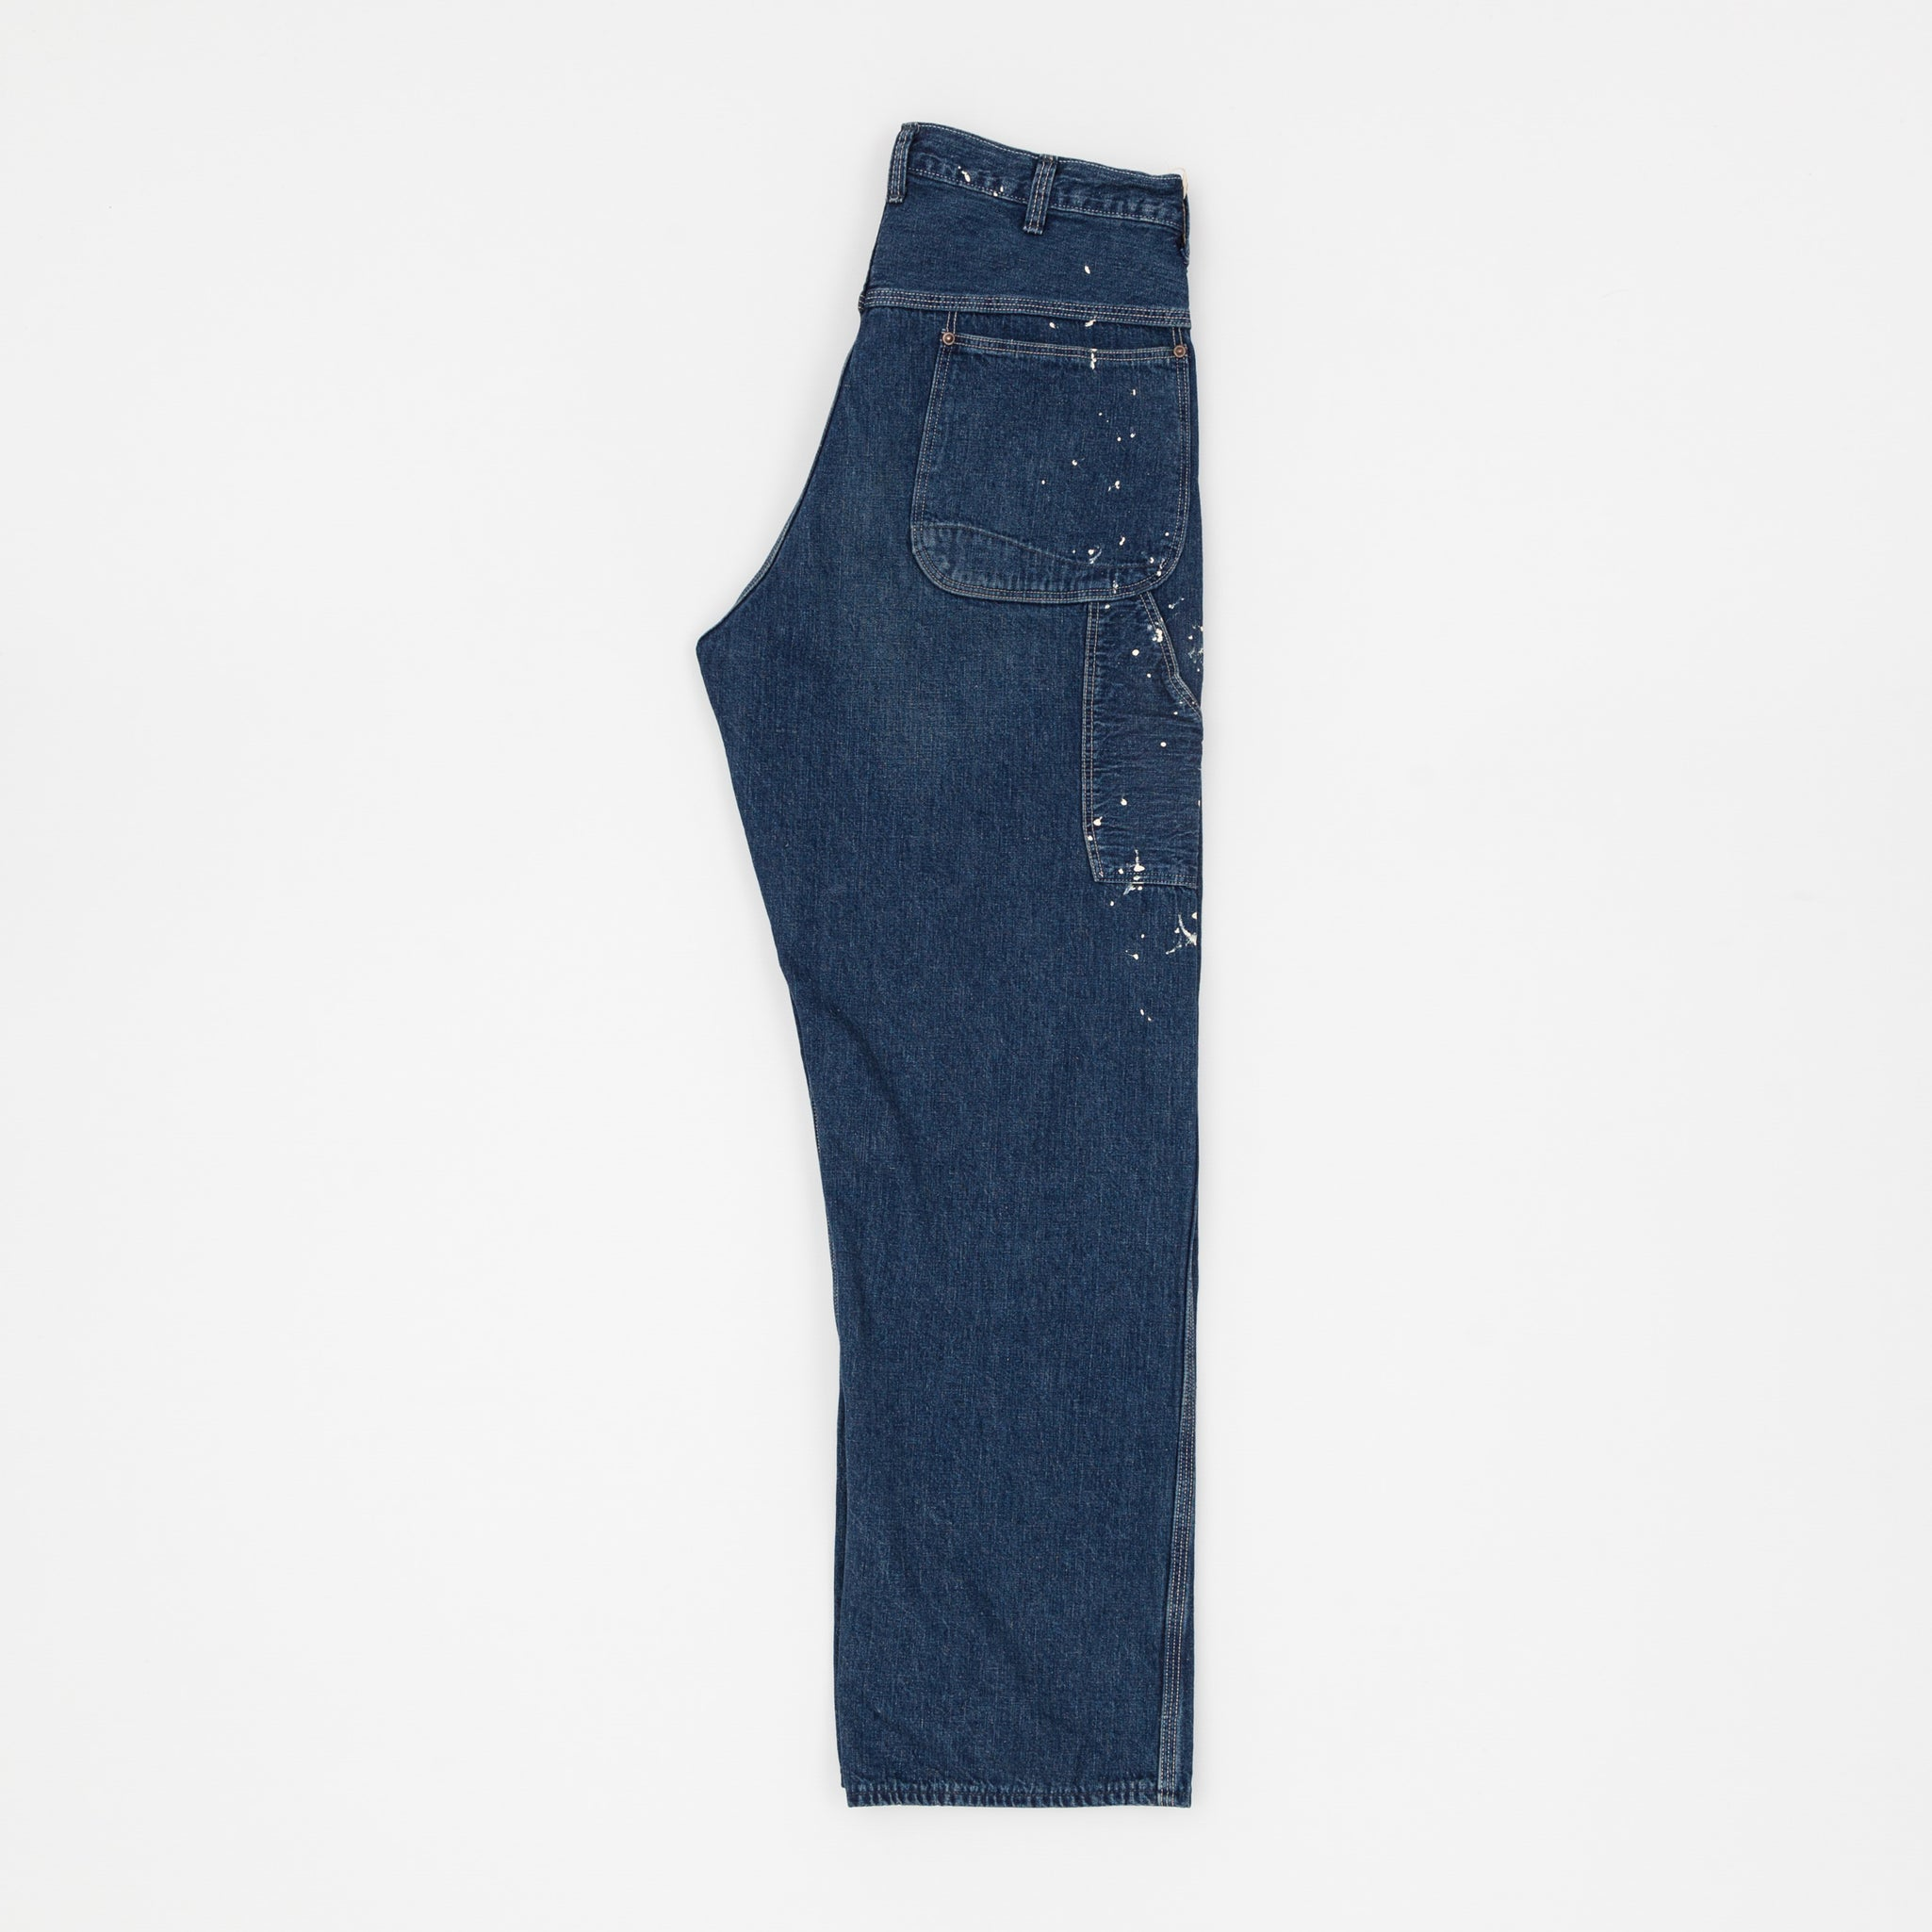 Denim Painter Pant - Paint Slash